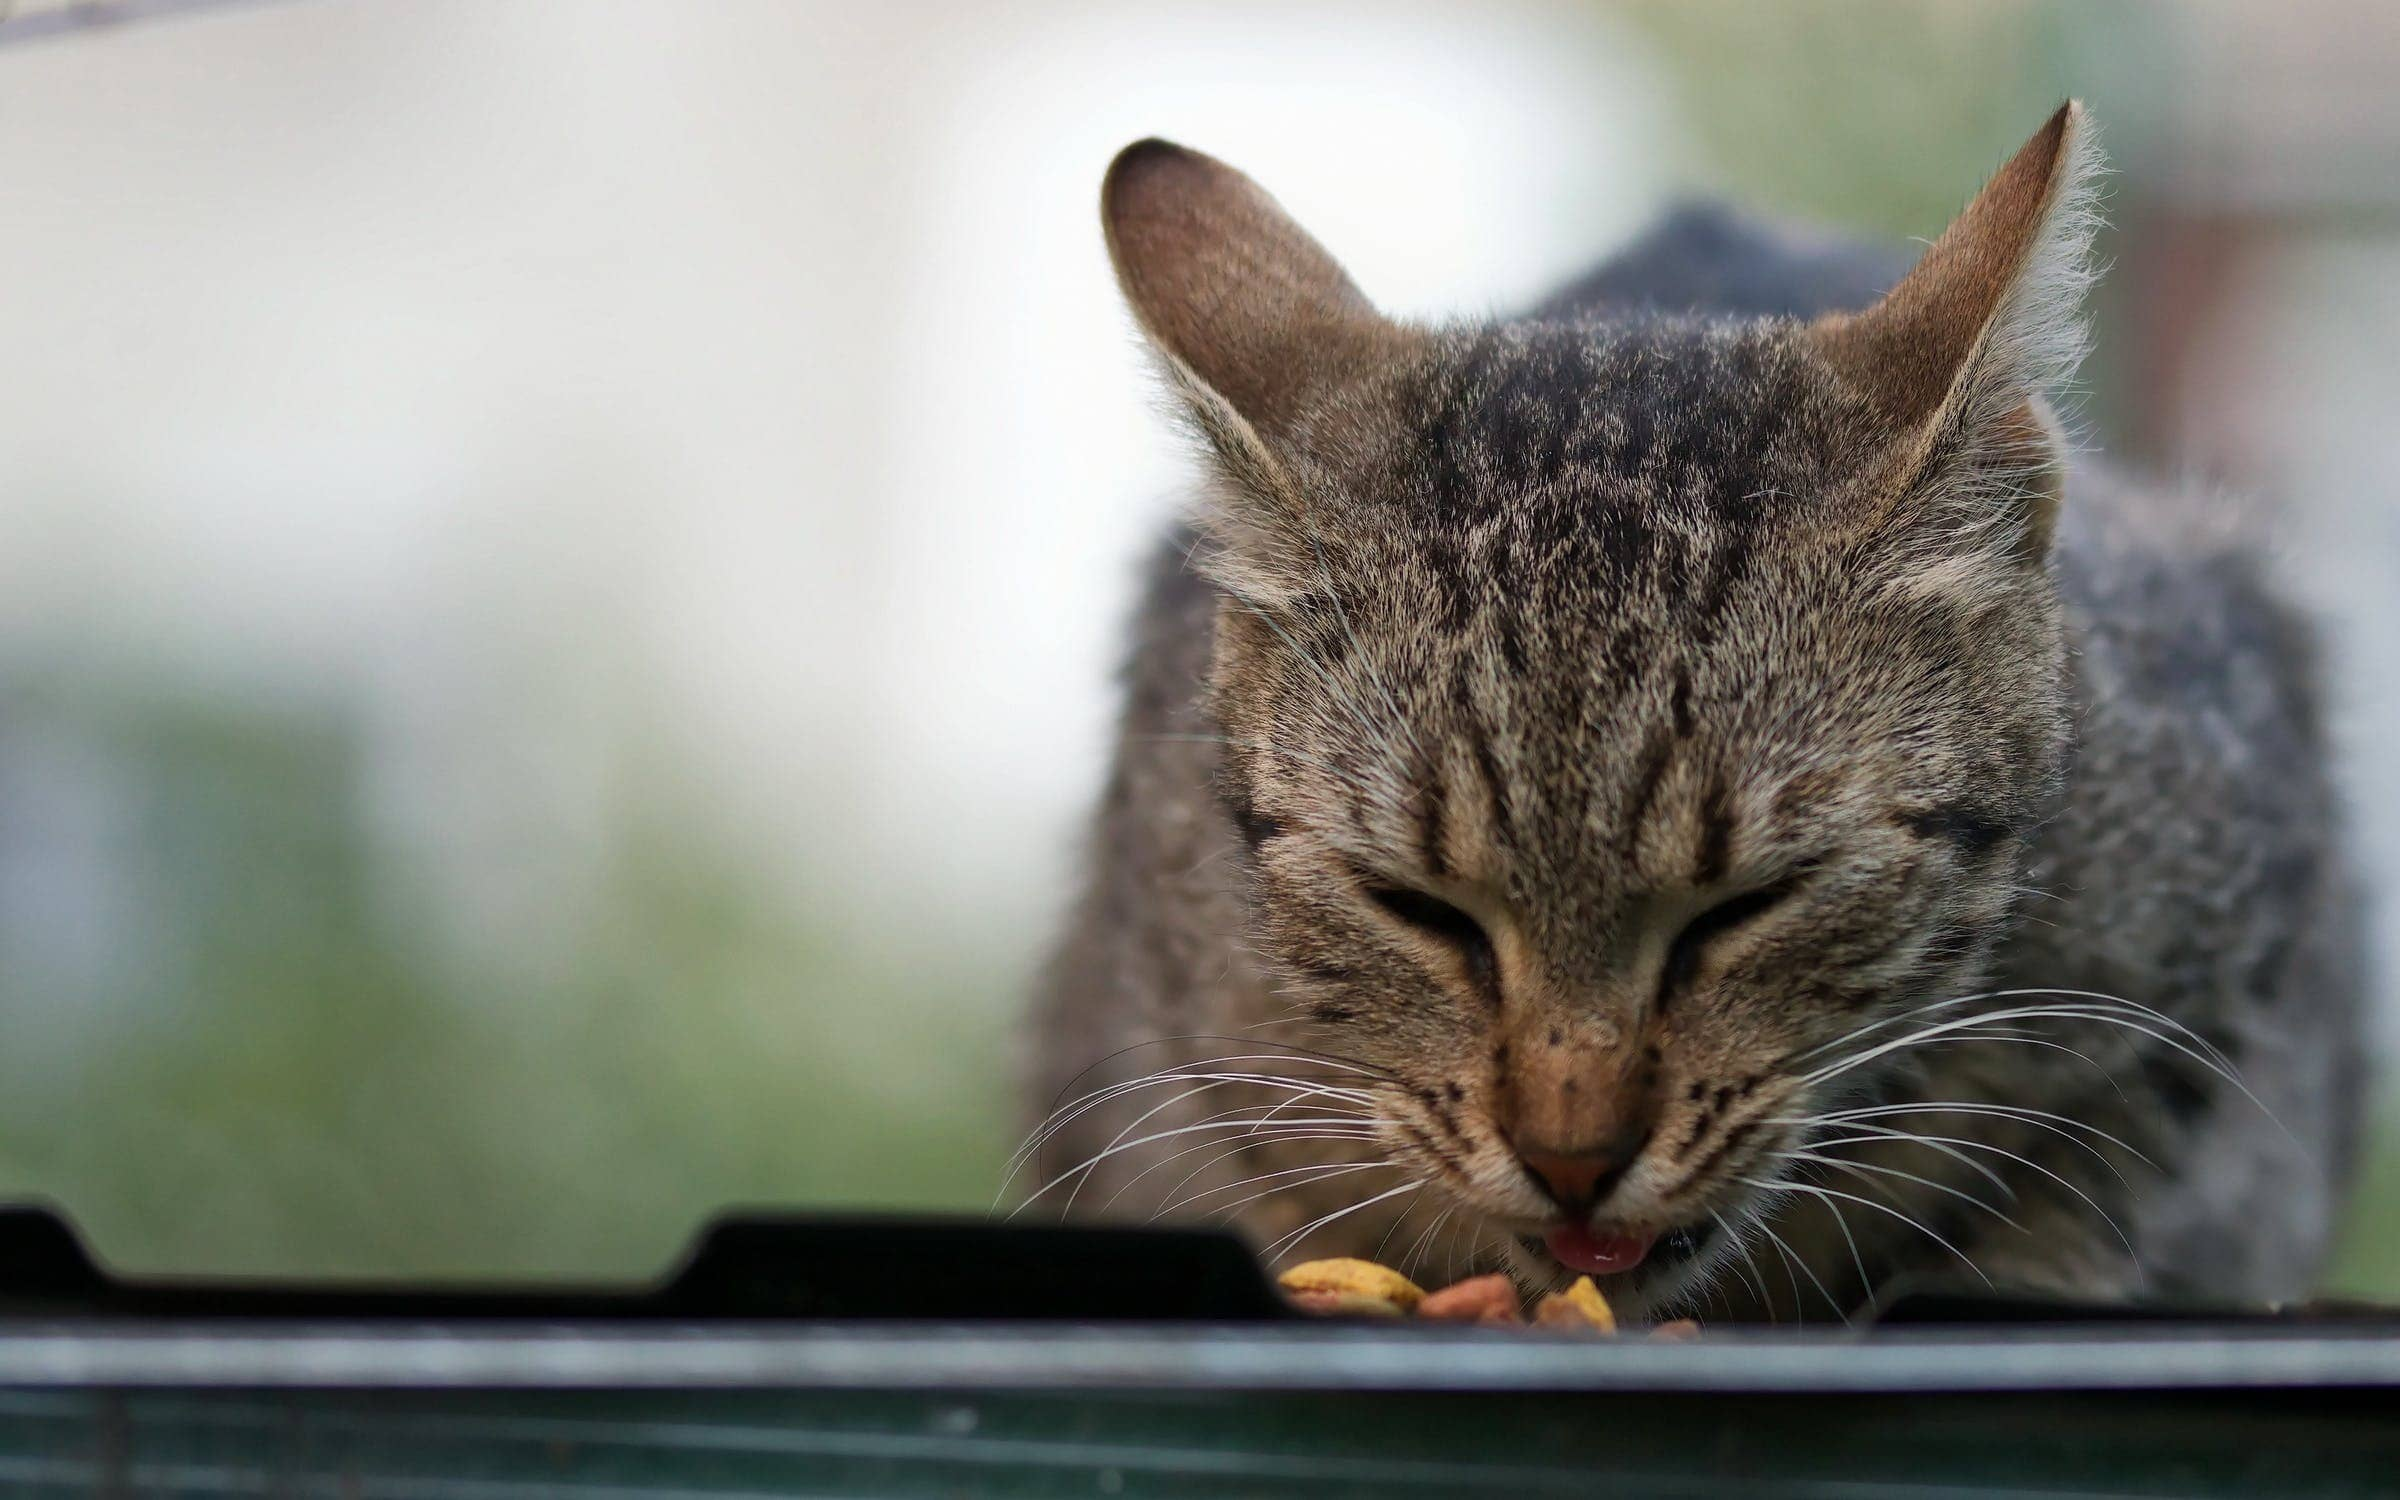 cat eating food